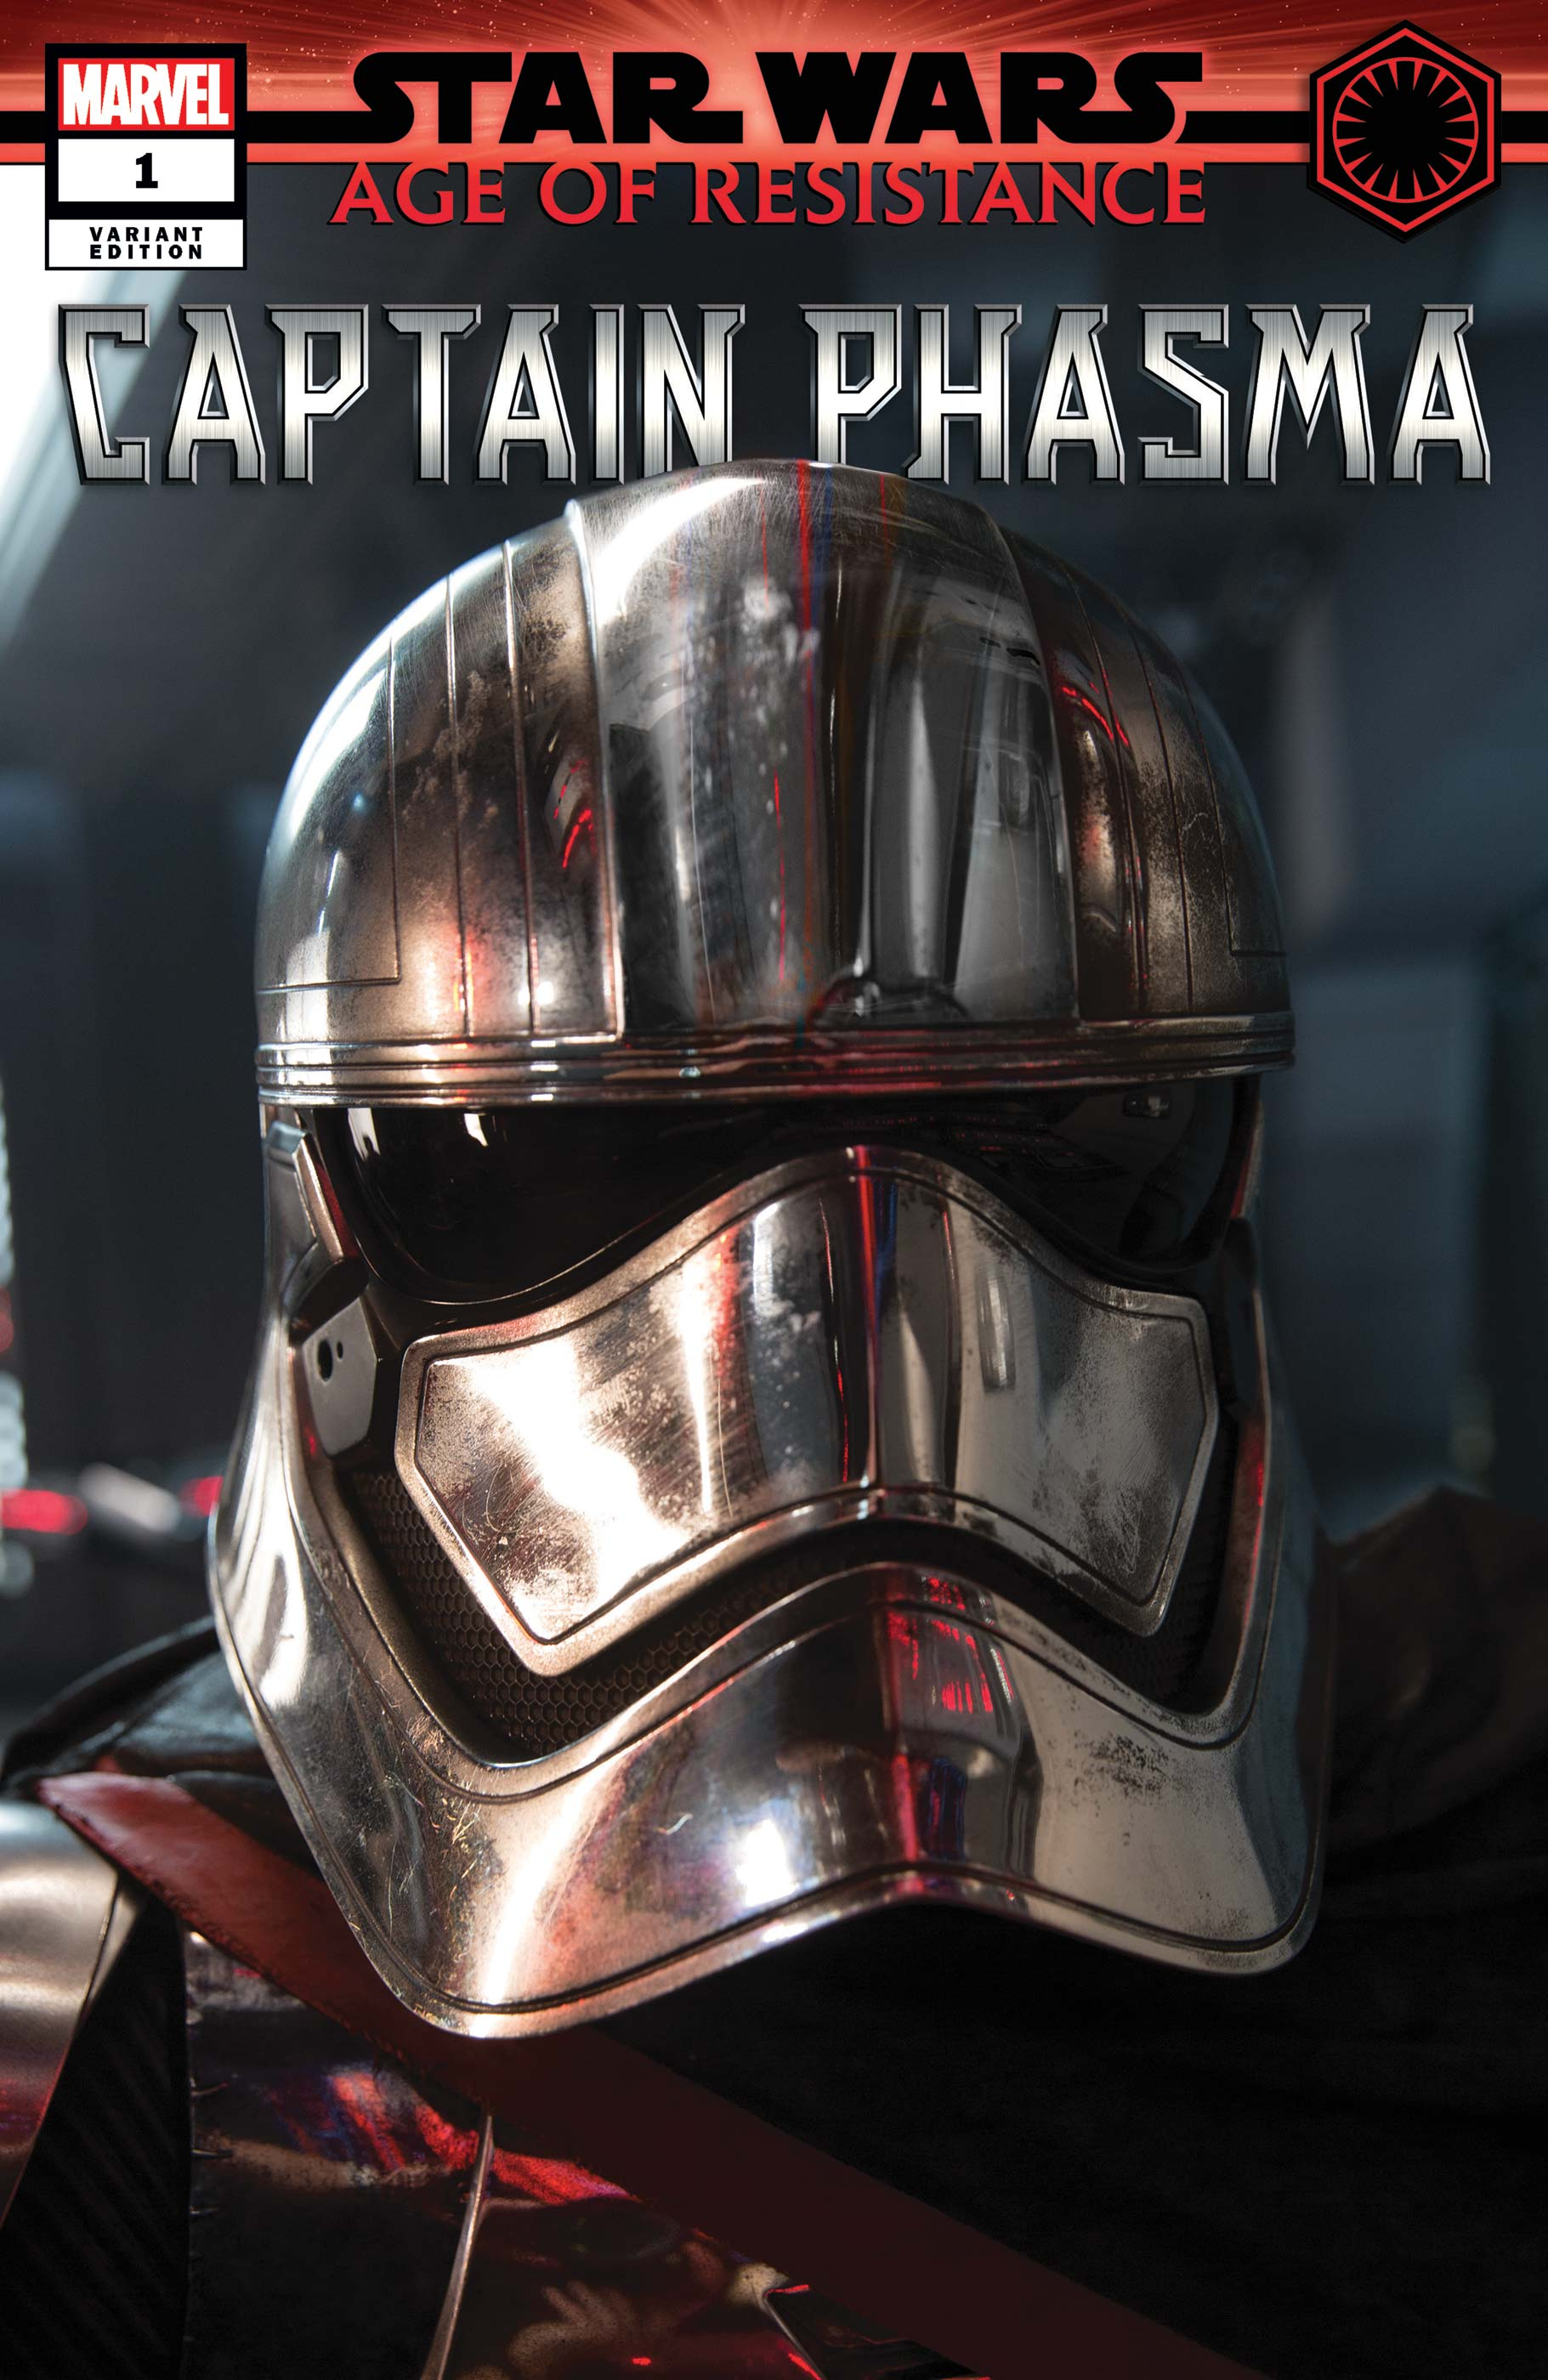 Star Wars: Age Of Resistance - Captain Phasma (2019) #1 (Variant)